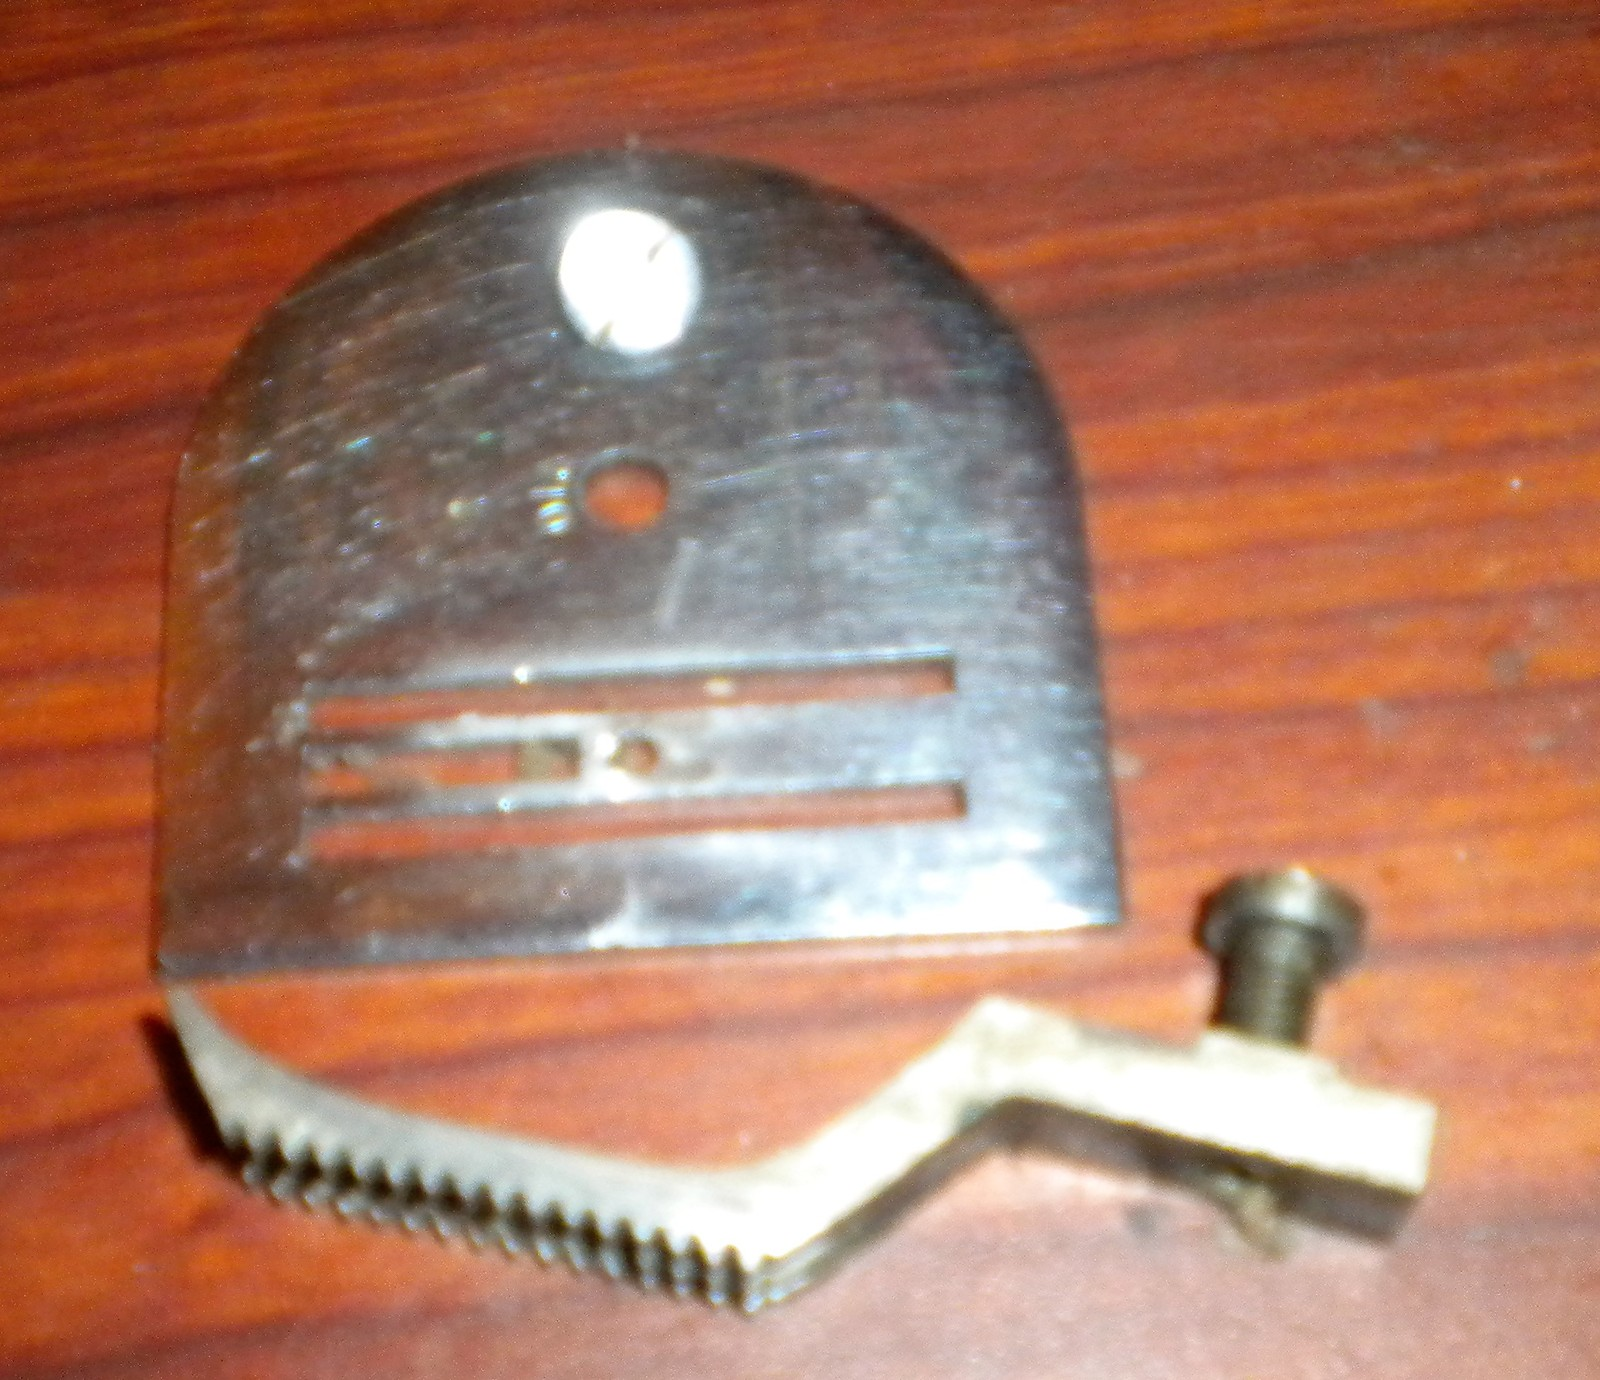 Primary image for Graybar National Rotary Machine Throat Plate w/Mounting Screw & Feed Dog w/Screw